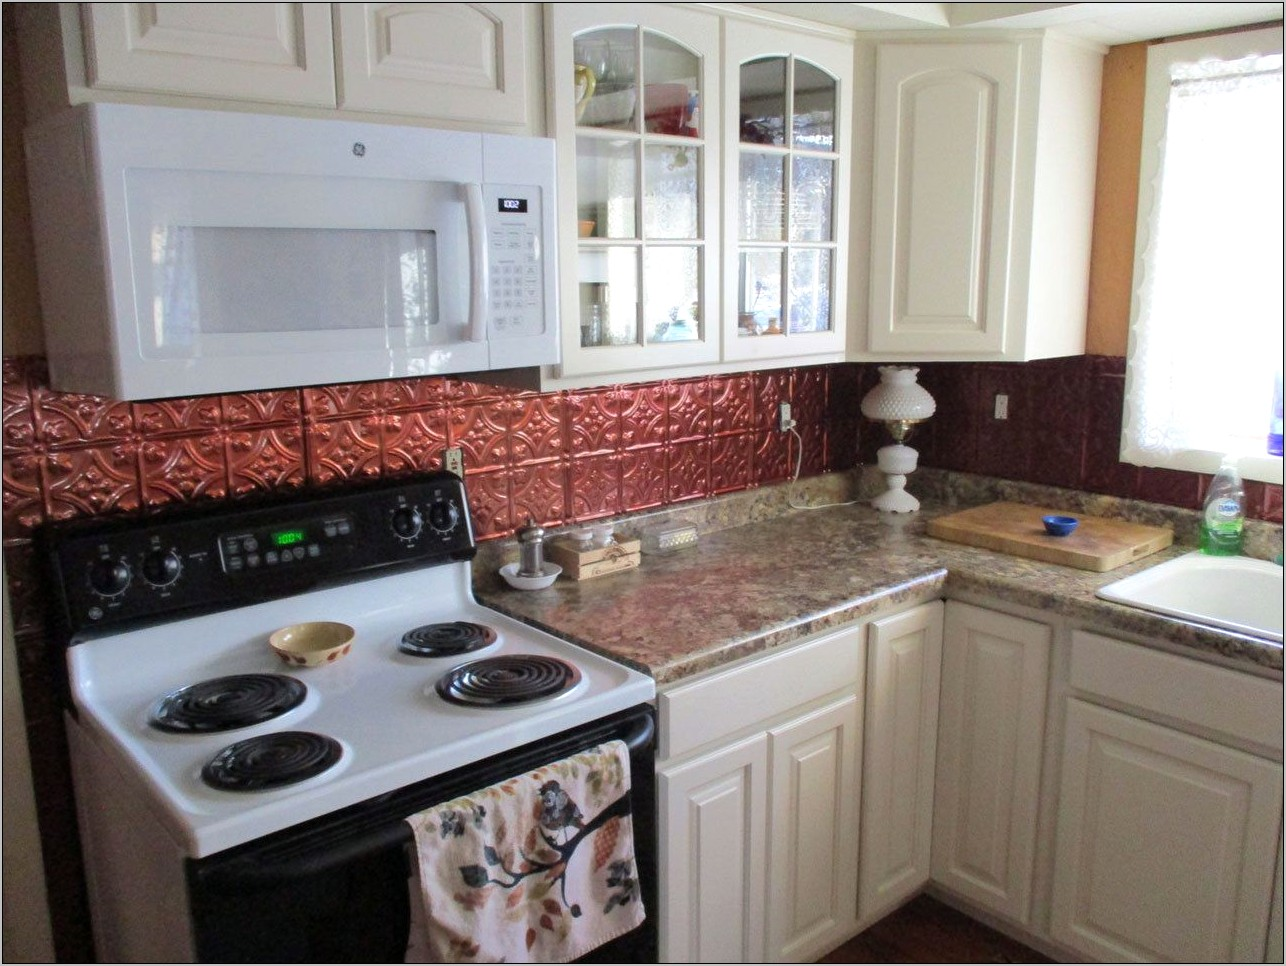 Decorative Ceiling Tiles For Kitchen